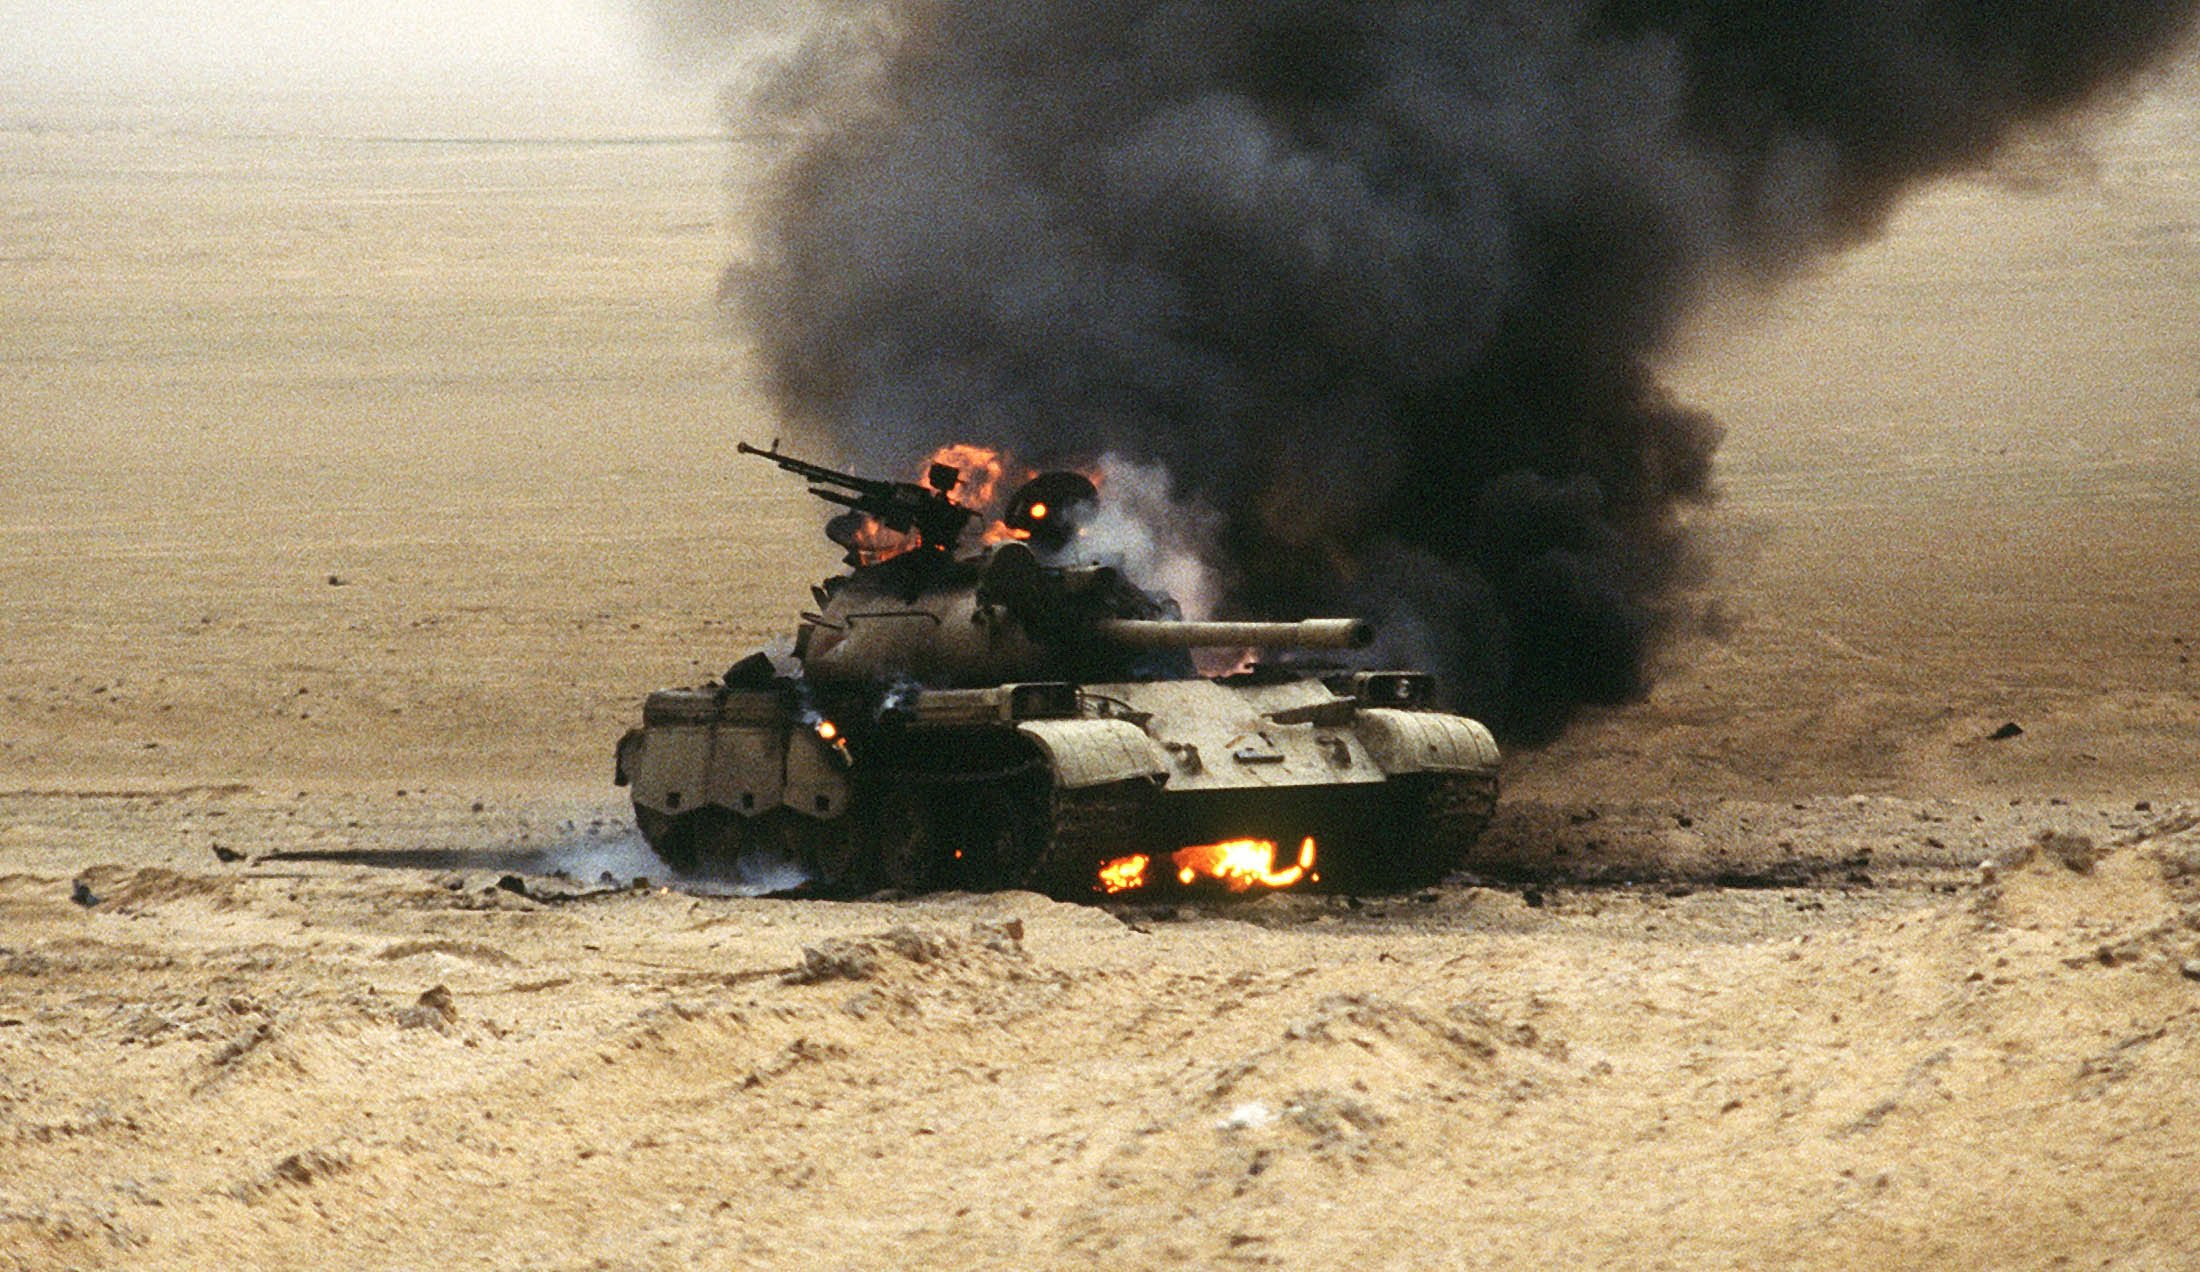 The Battle of 73 Easting: The True Story Behind Desert Storm's Most Intense Tank Battle